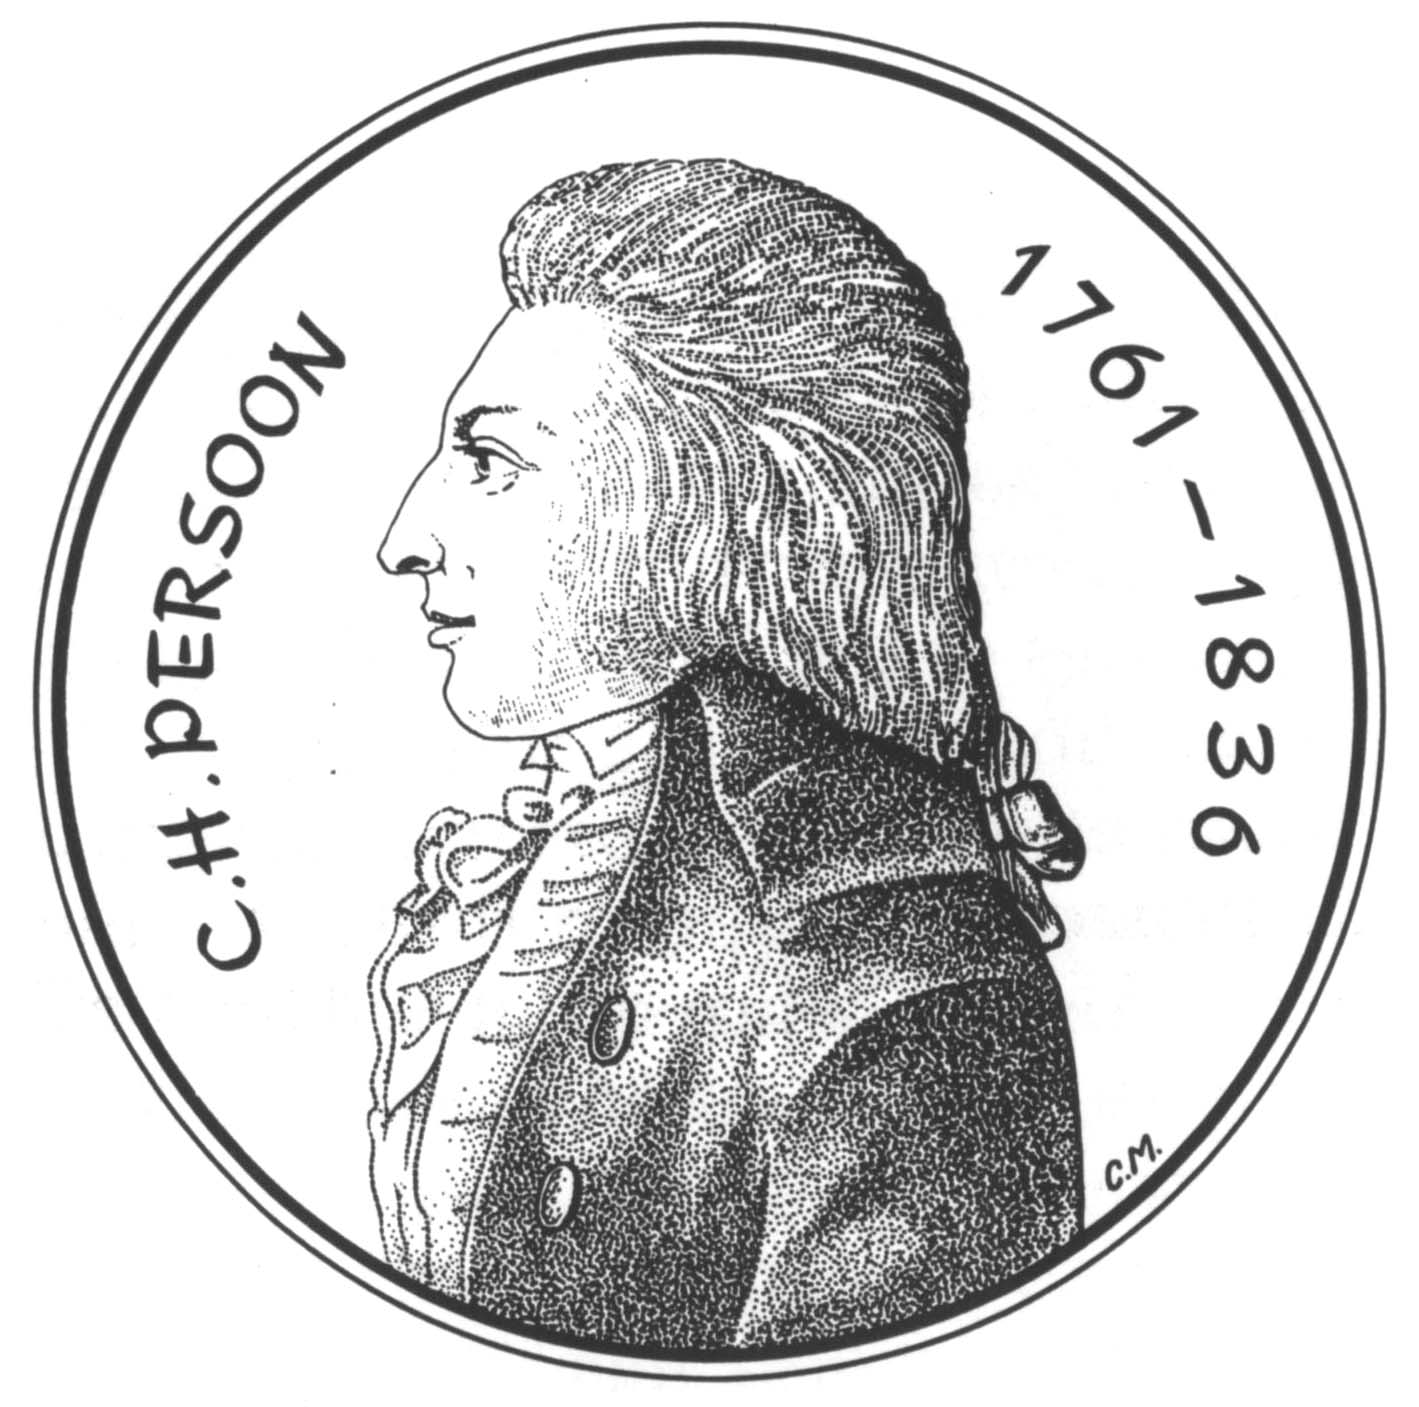 C.H. Persoon